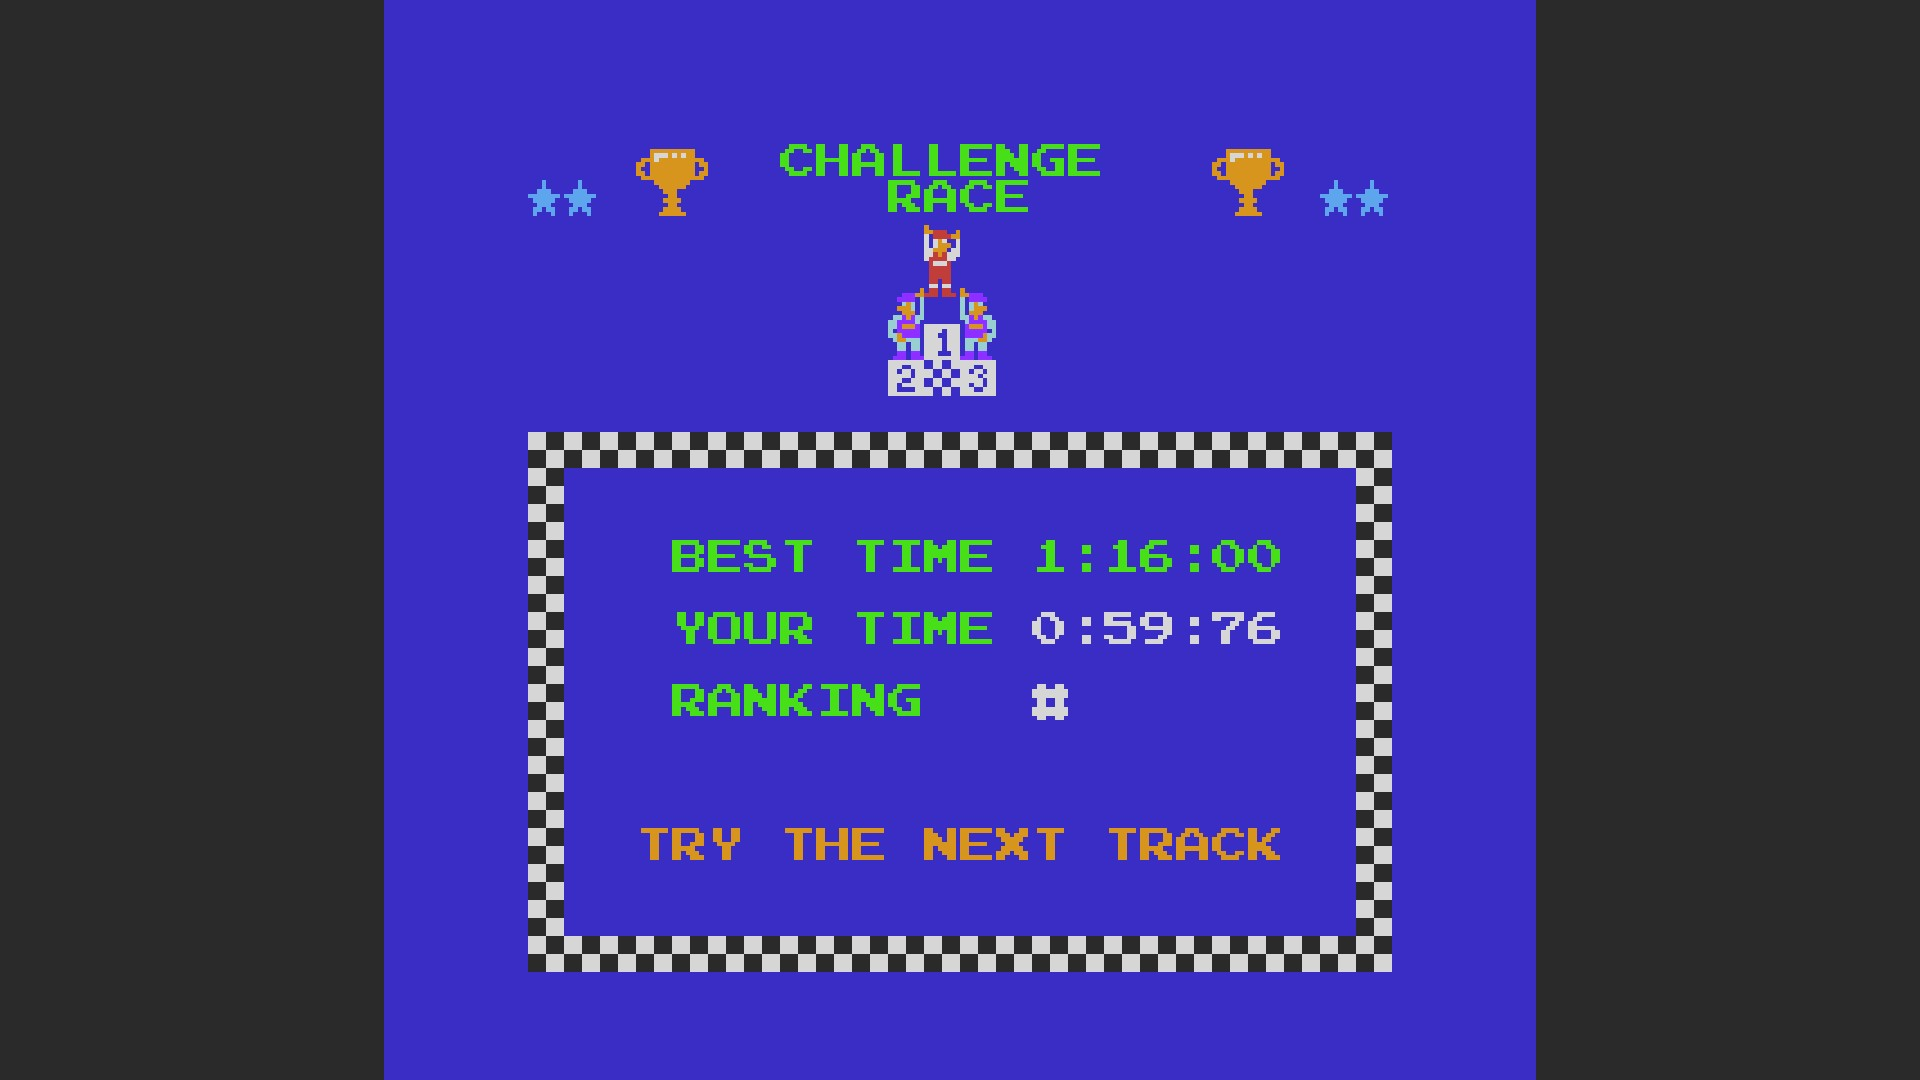 Excitebike: Track 1 time of 0:00:59.76